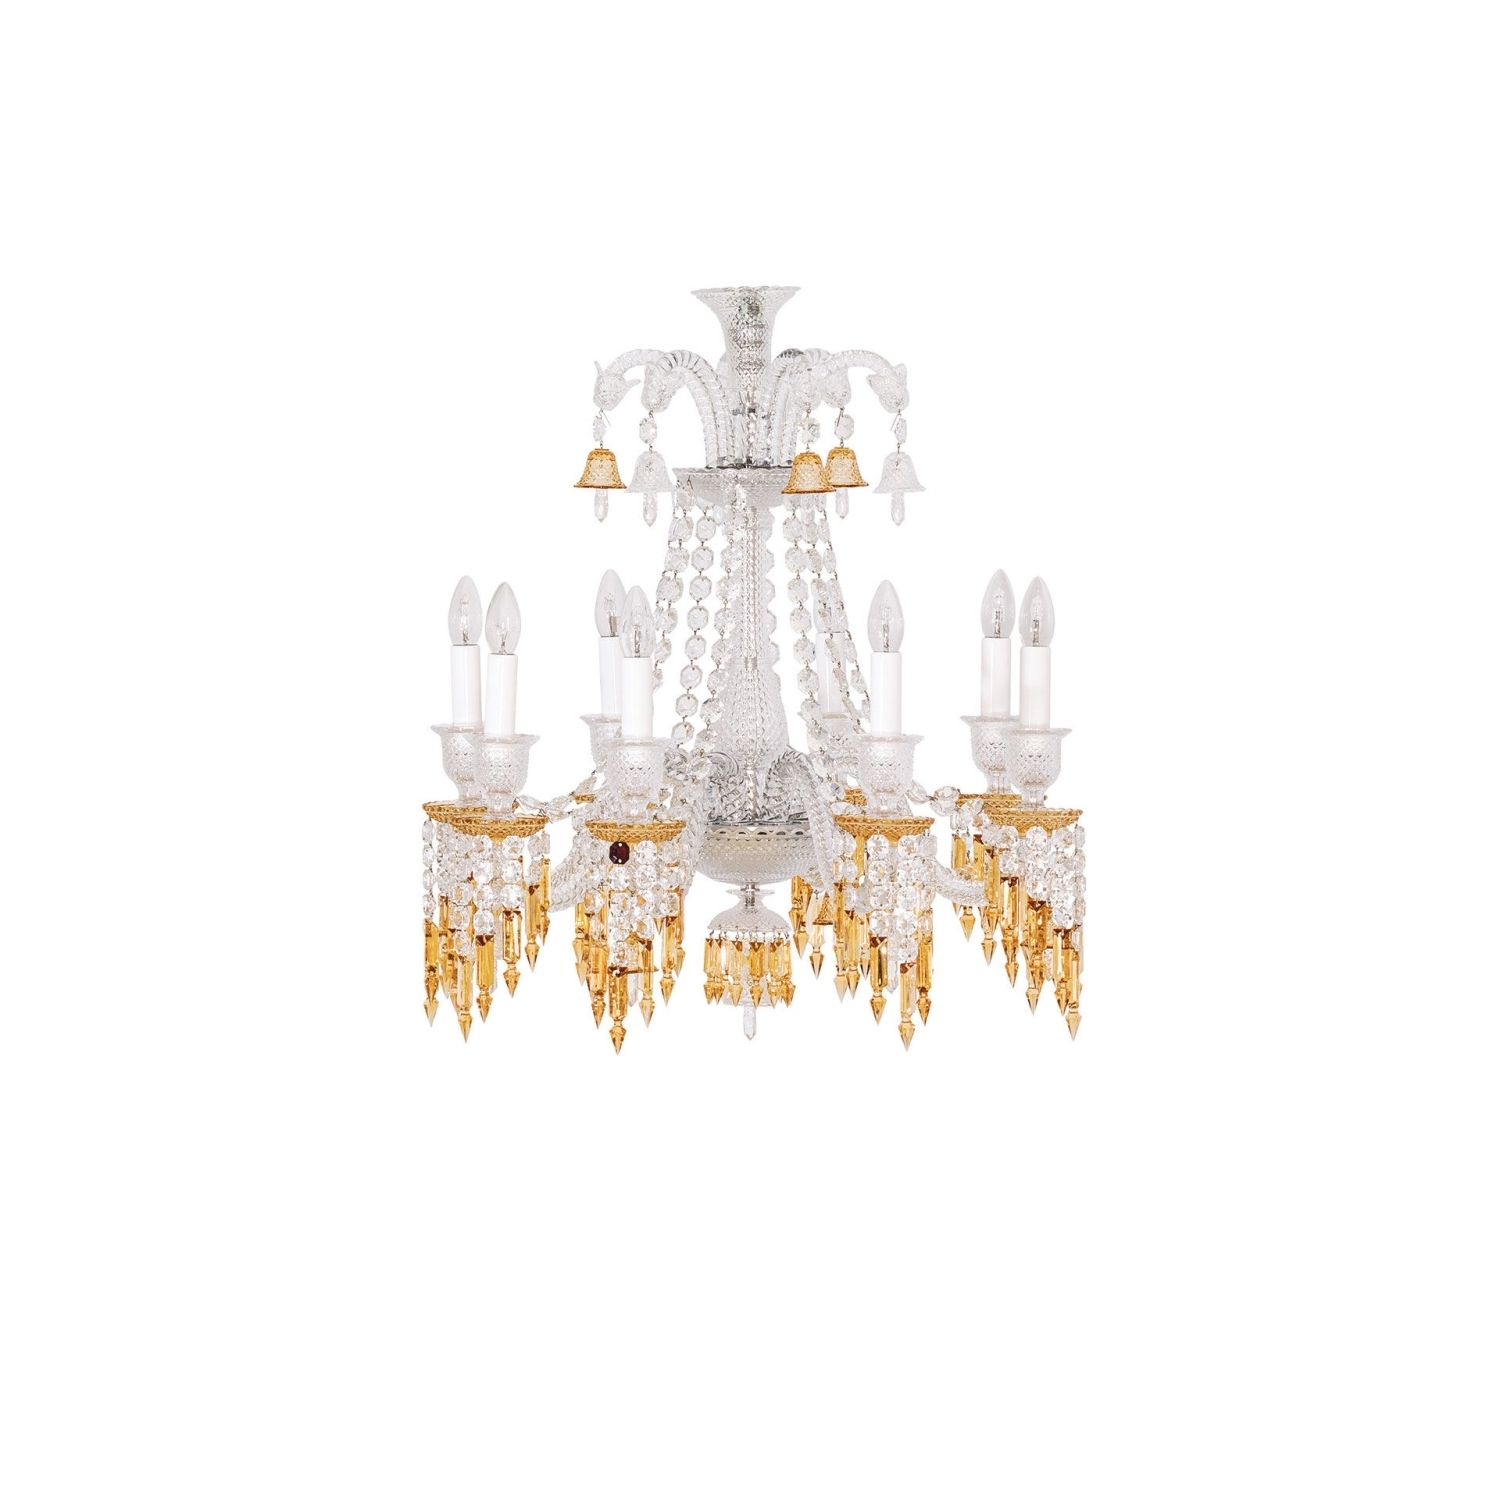 Well Liked Chandelier 8L Baccarat Zenith Charleston 2809404 Regarding Short Chandelier Lights (View 13 of 15)